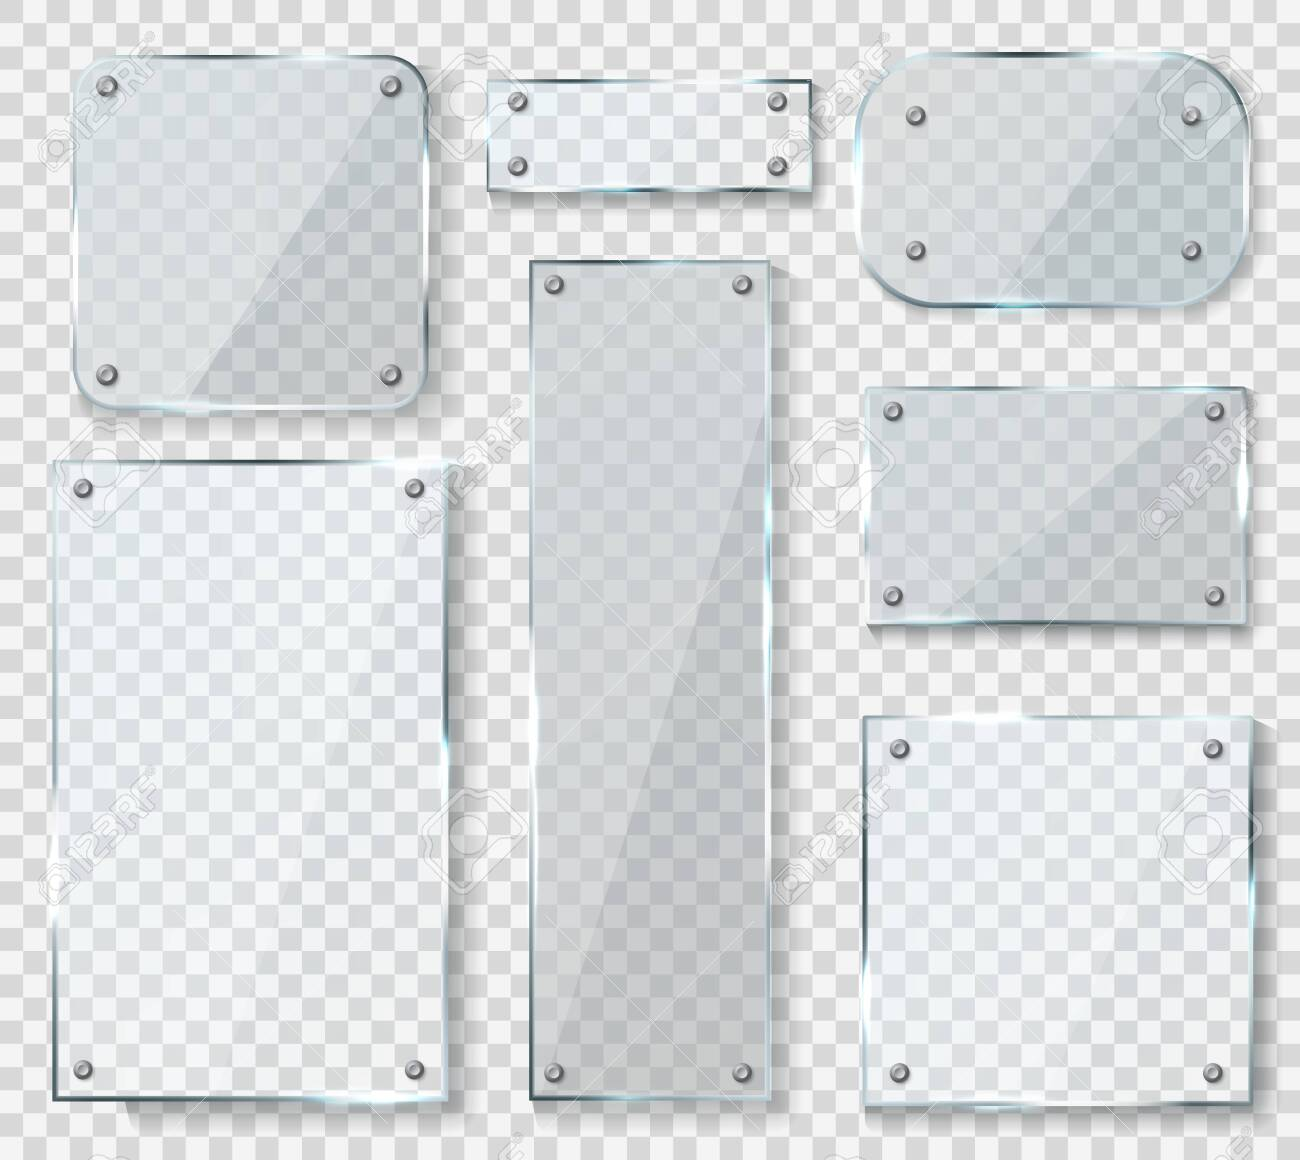 Glass panels with screws. Acrylic empty square banners with glossy glare reflections set, realistic clear wall window with shadows isolated on transparent background, 3d vector mockups collection - 153744668